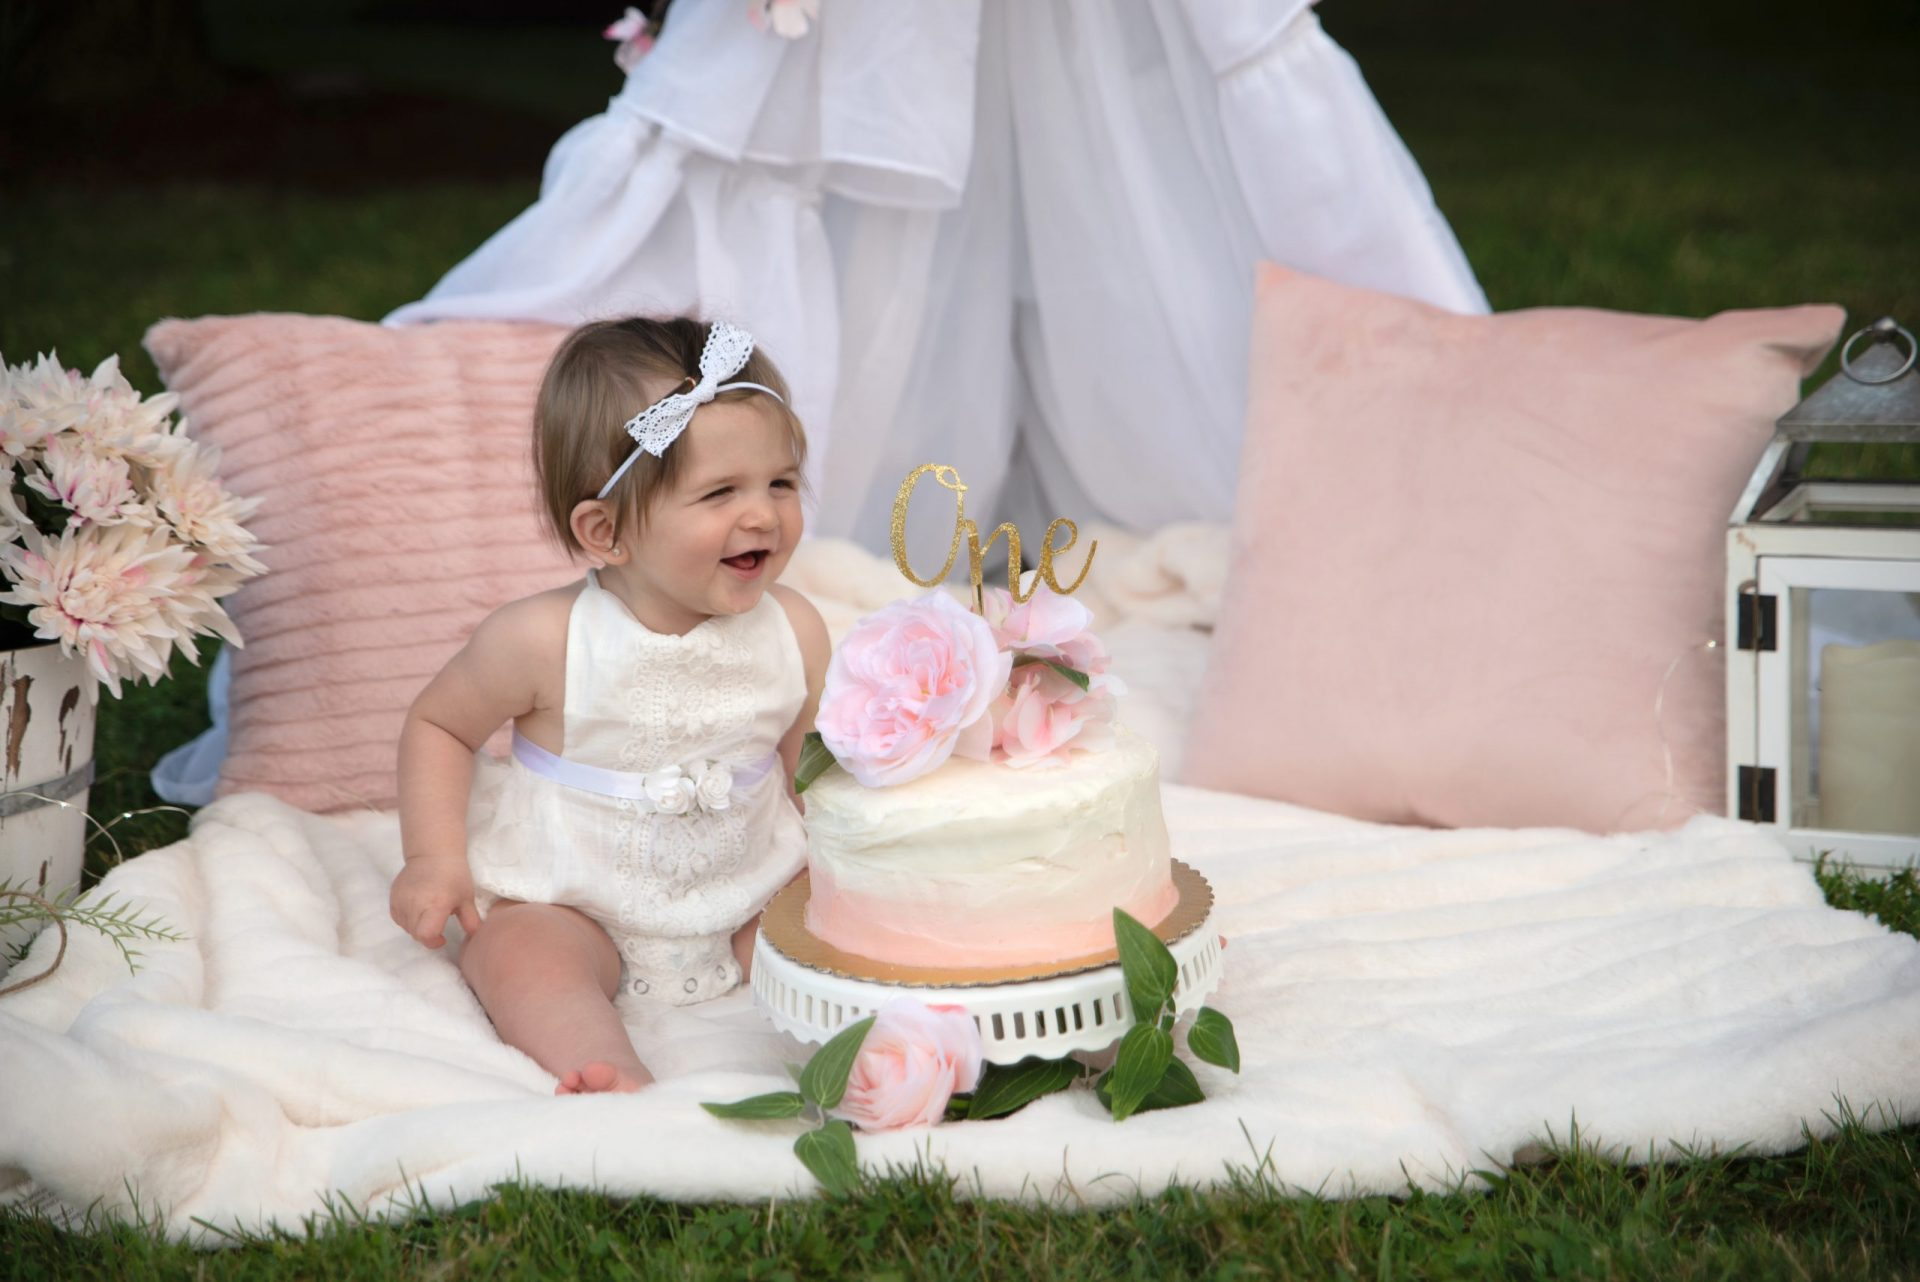 outdoor cake smash pics Cleveland Ohio